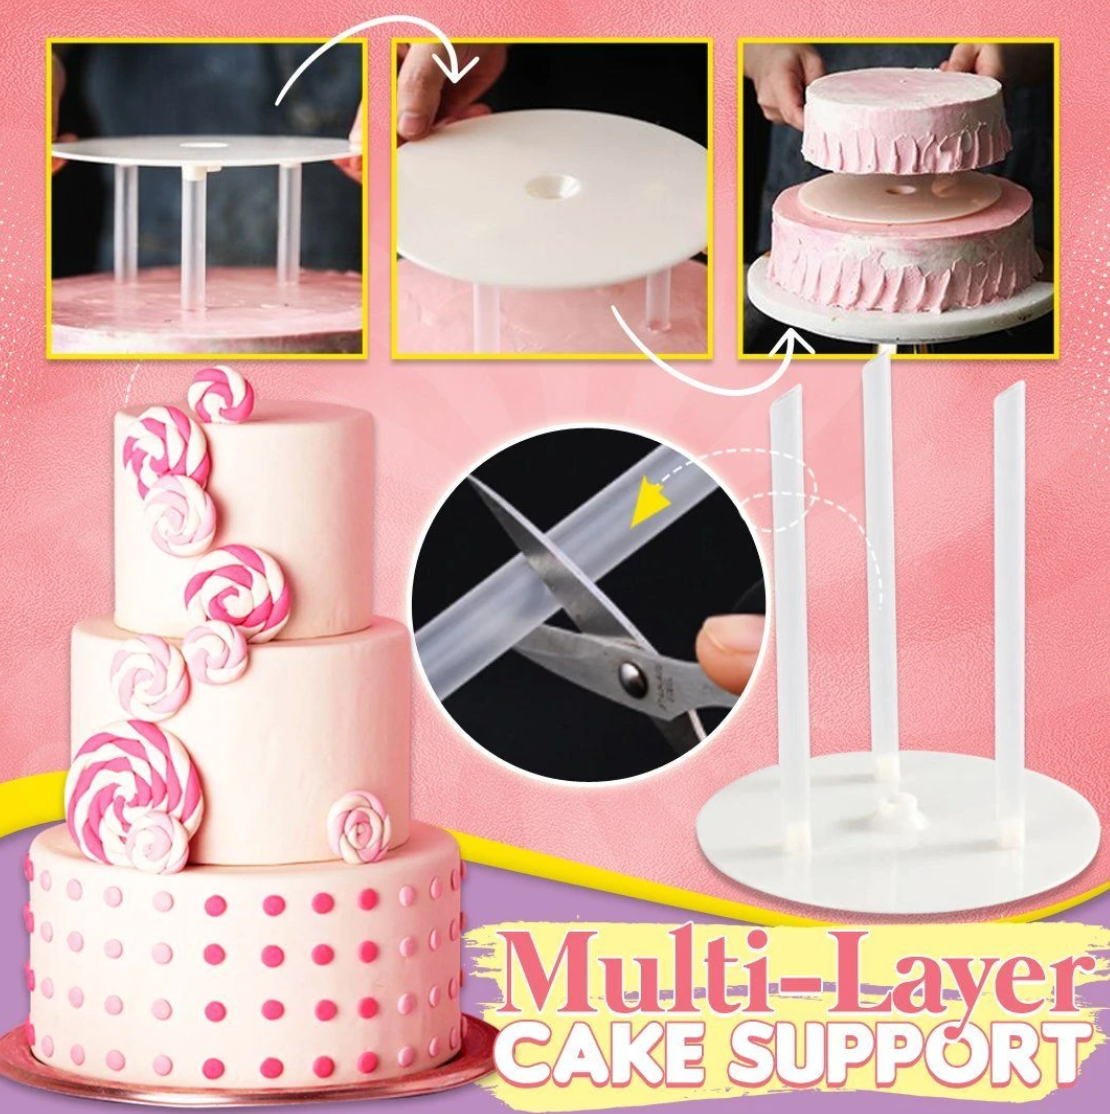 Multi-layer Cake Support